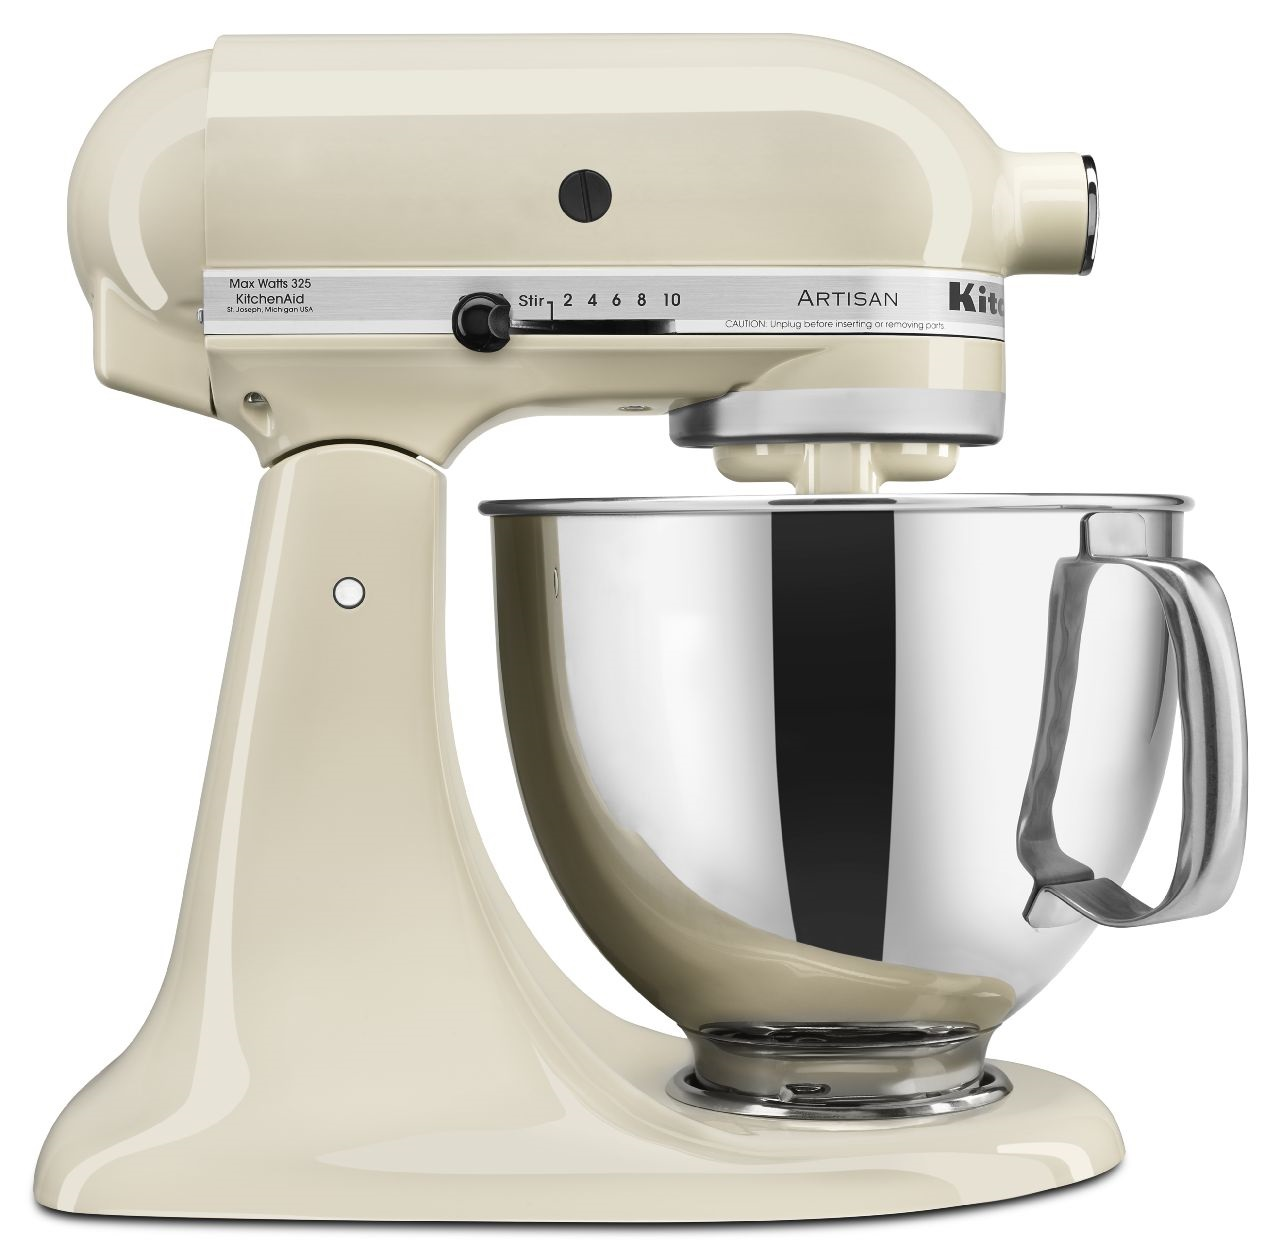 White Kitchenaid kitchenaid® artisan® series 5 qt. tilt head stand mixer